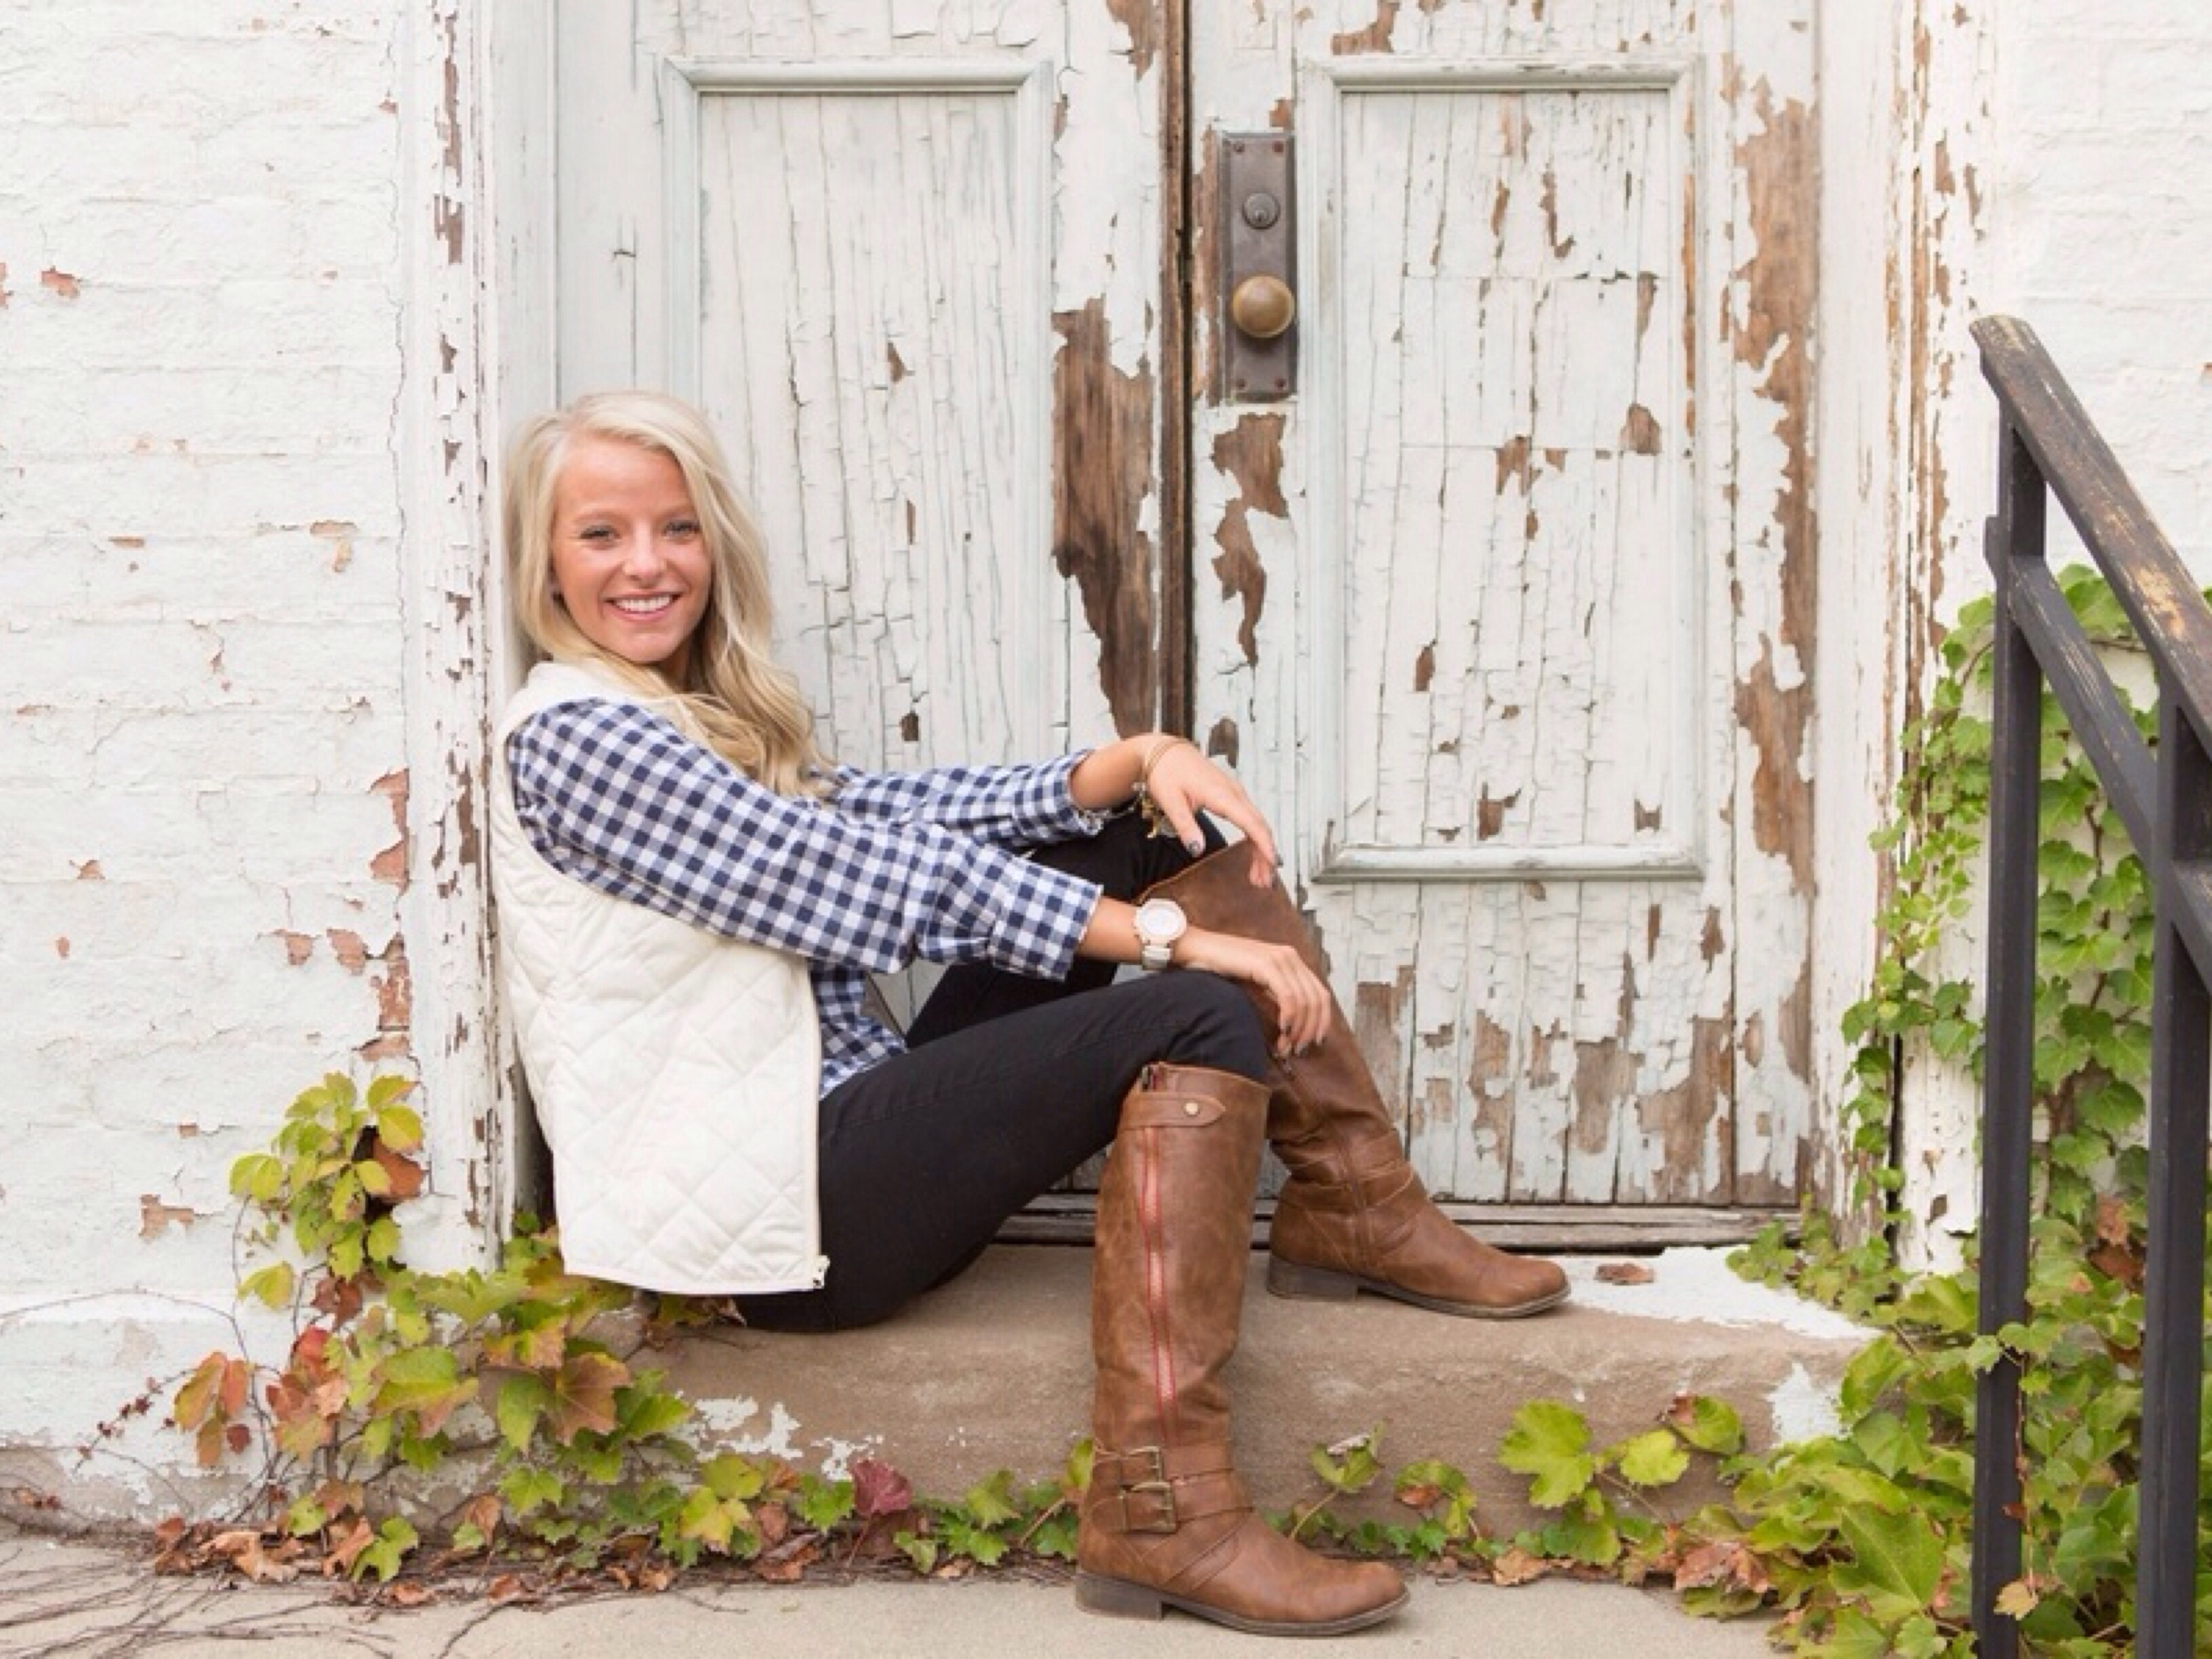 Frankfort Indiana Senior Session: Photography by Ashley Renee Photography via Heather Renee Celebrations